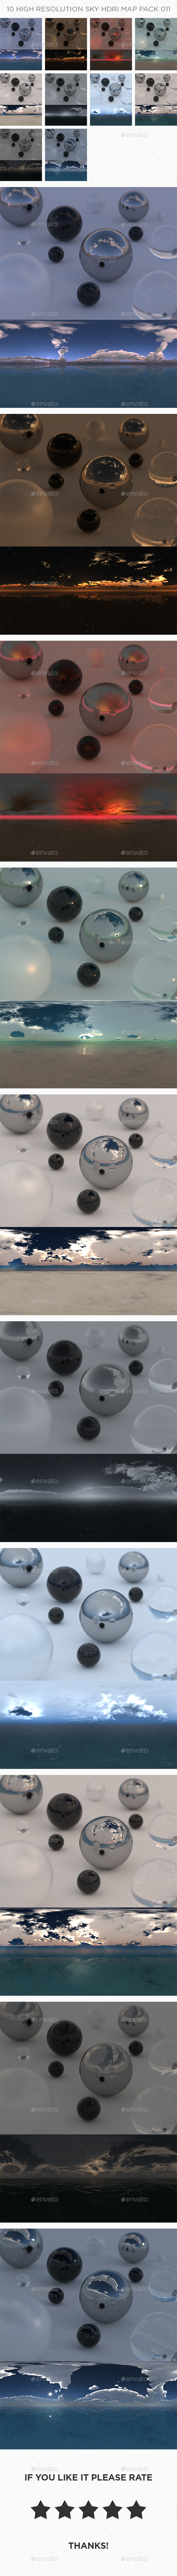 3DOcean 10 High Resolution Sky HDRi Maps Pack 011 21072400